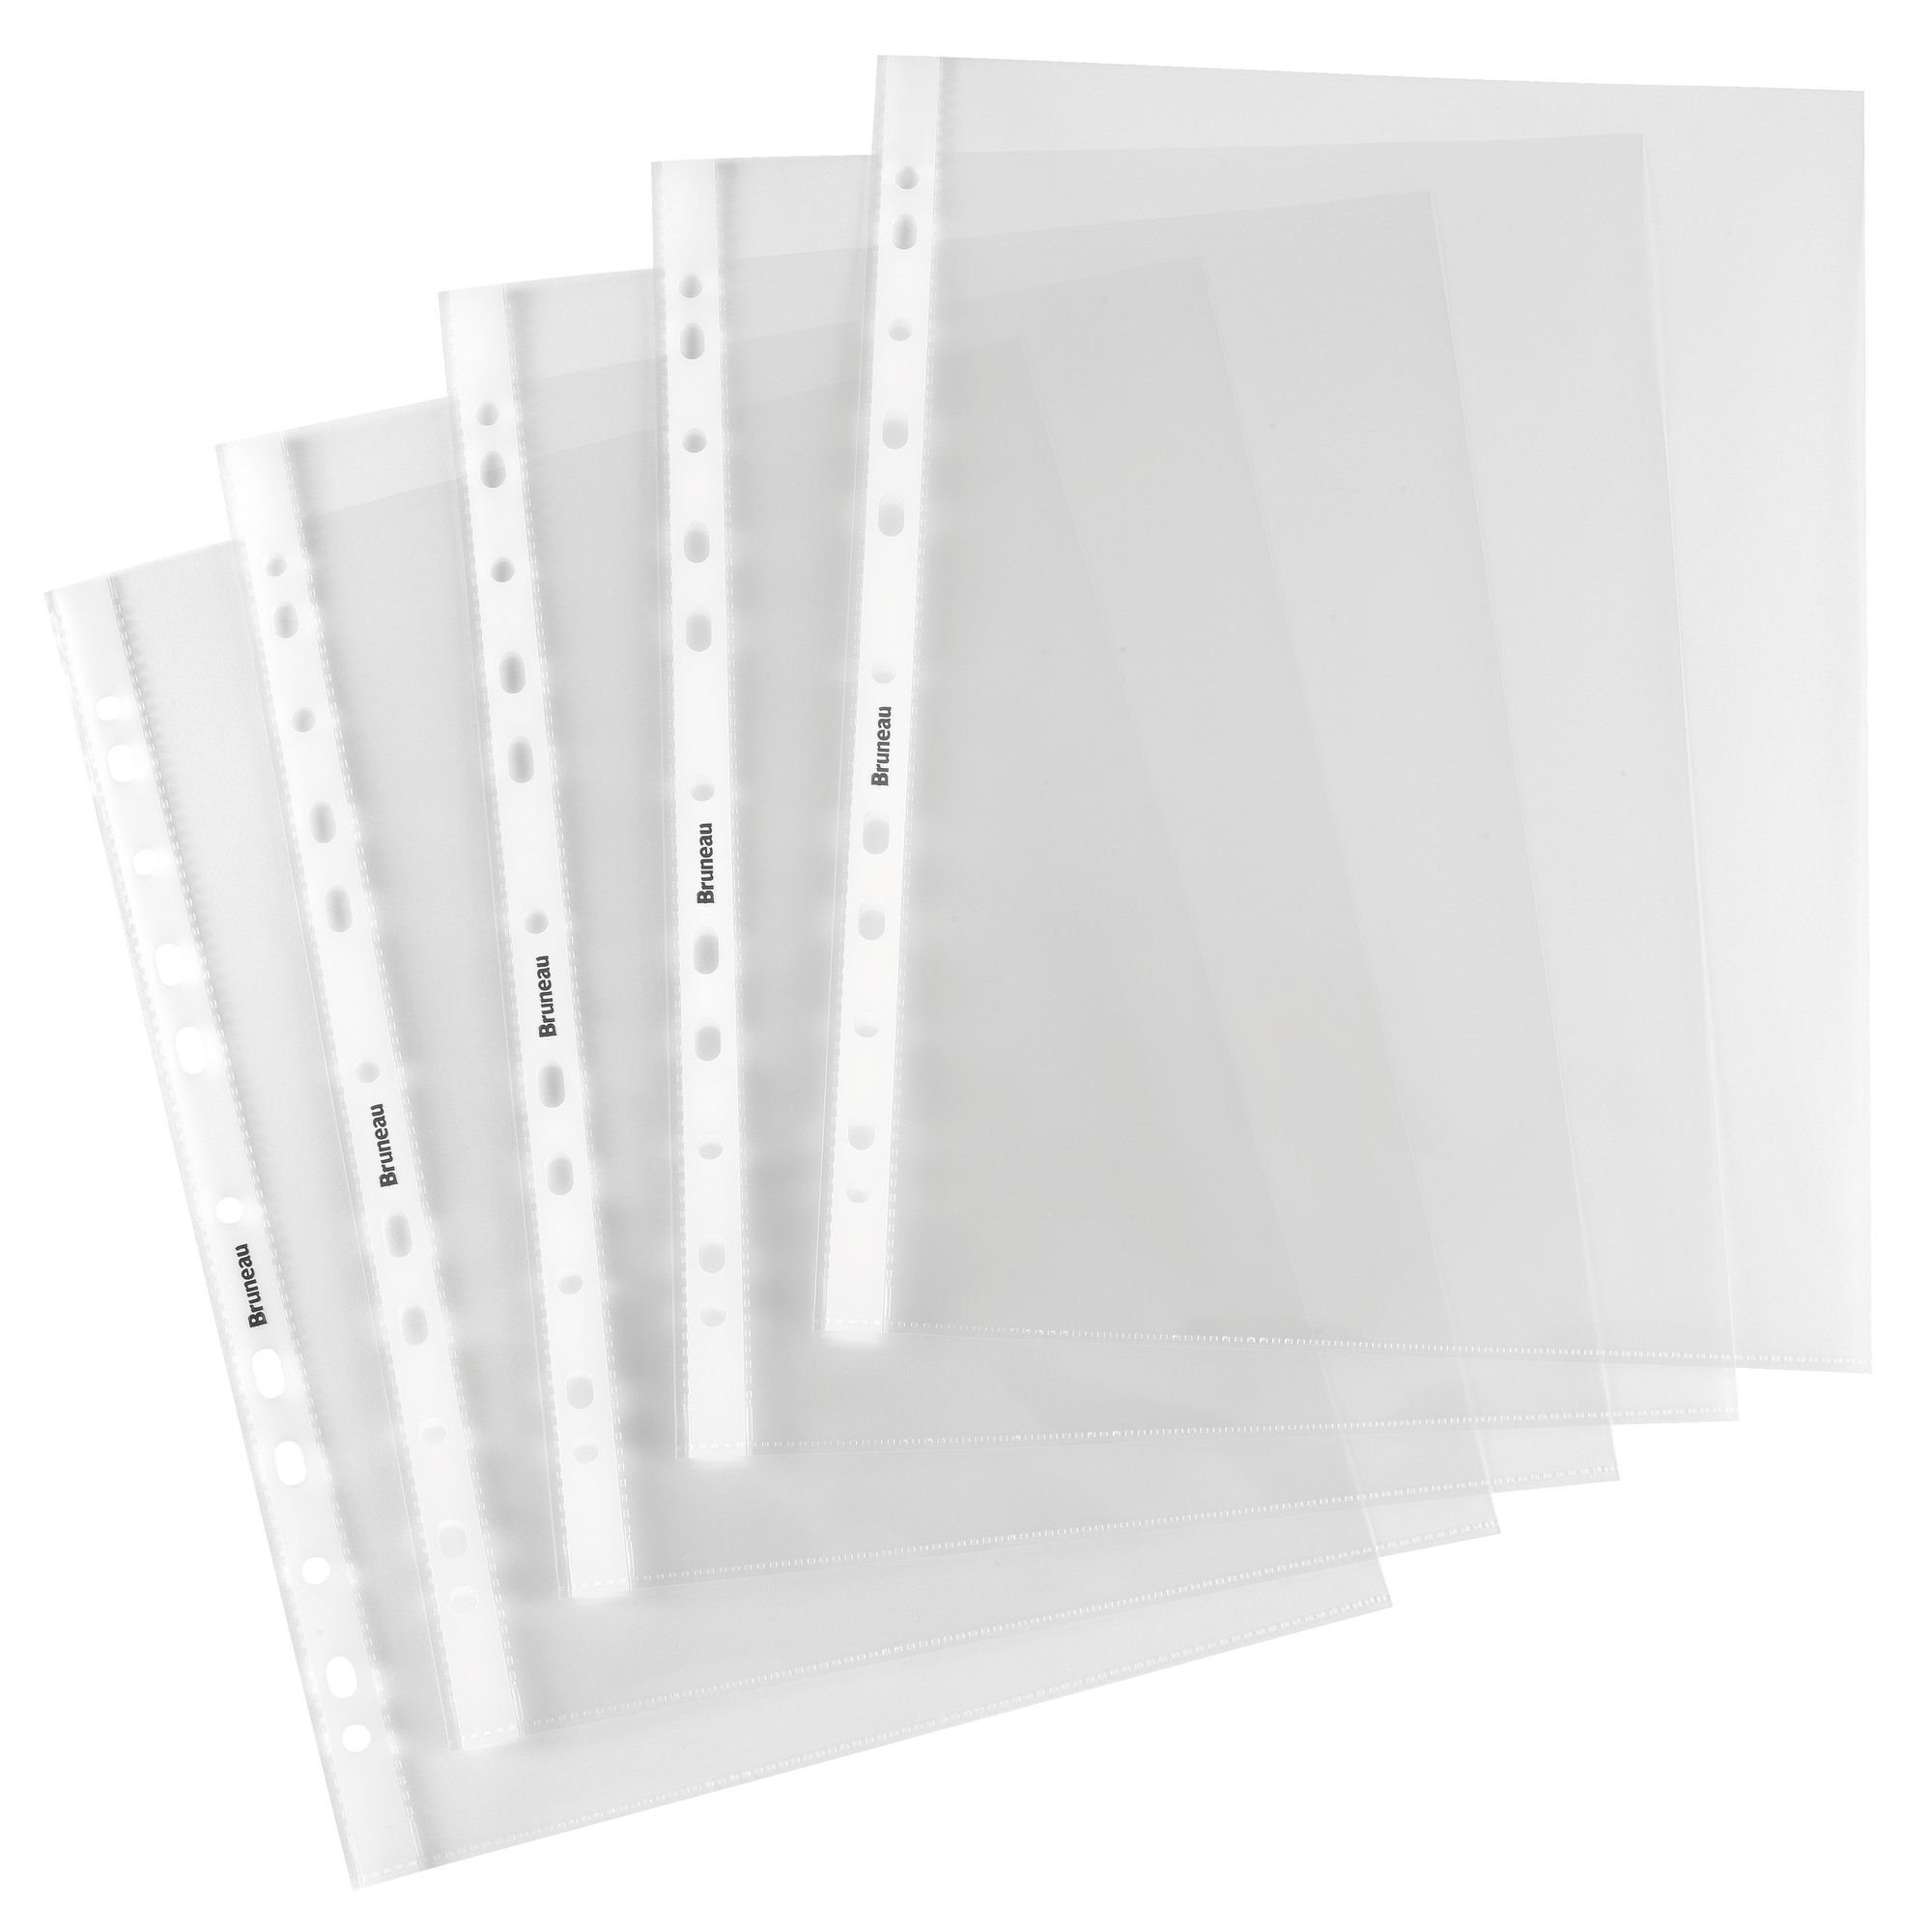 Pack of 100 perforated sleeves Bruneau A4 grained polypropylene 6/100e